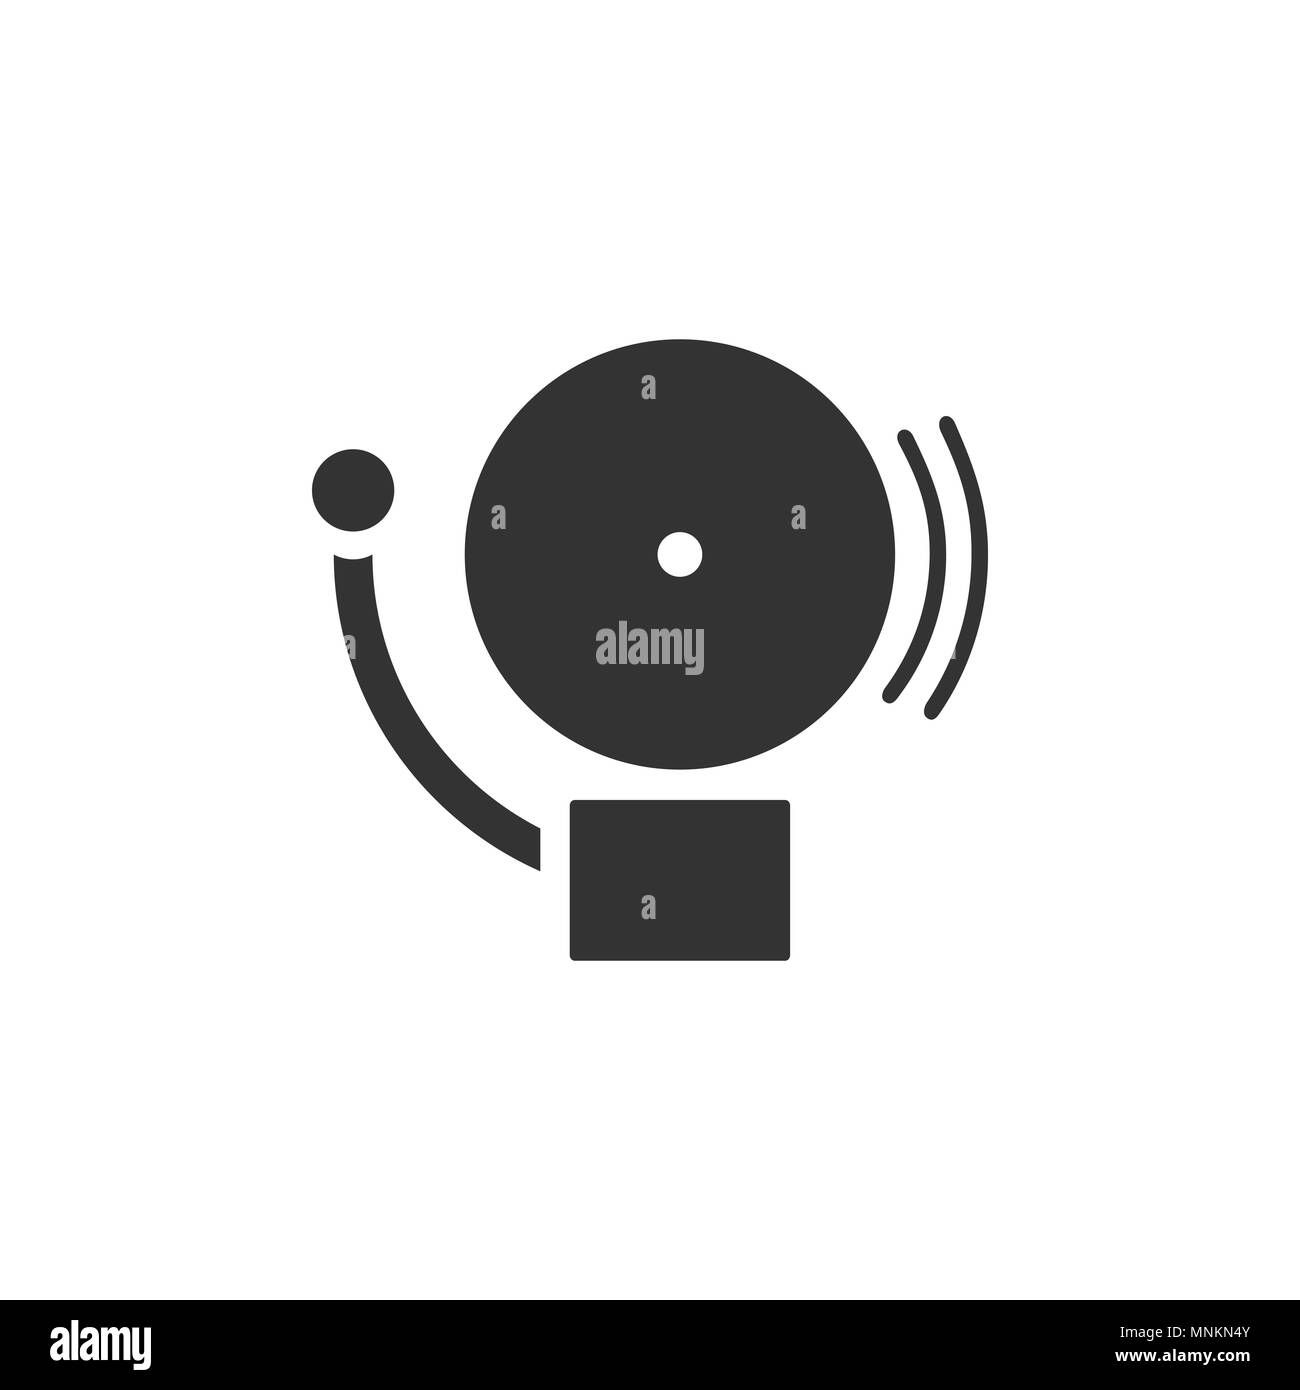 Alarm icon on a white background. Vector illustration - Stock Image